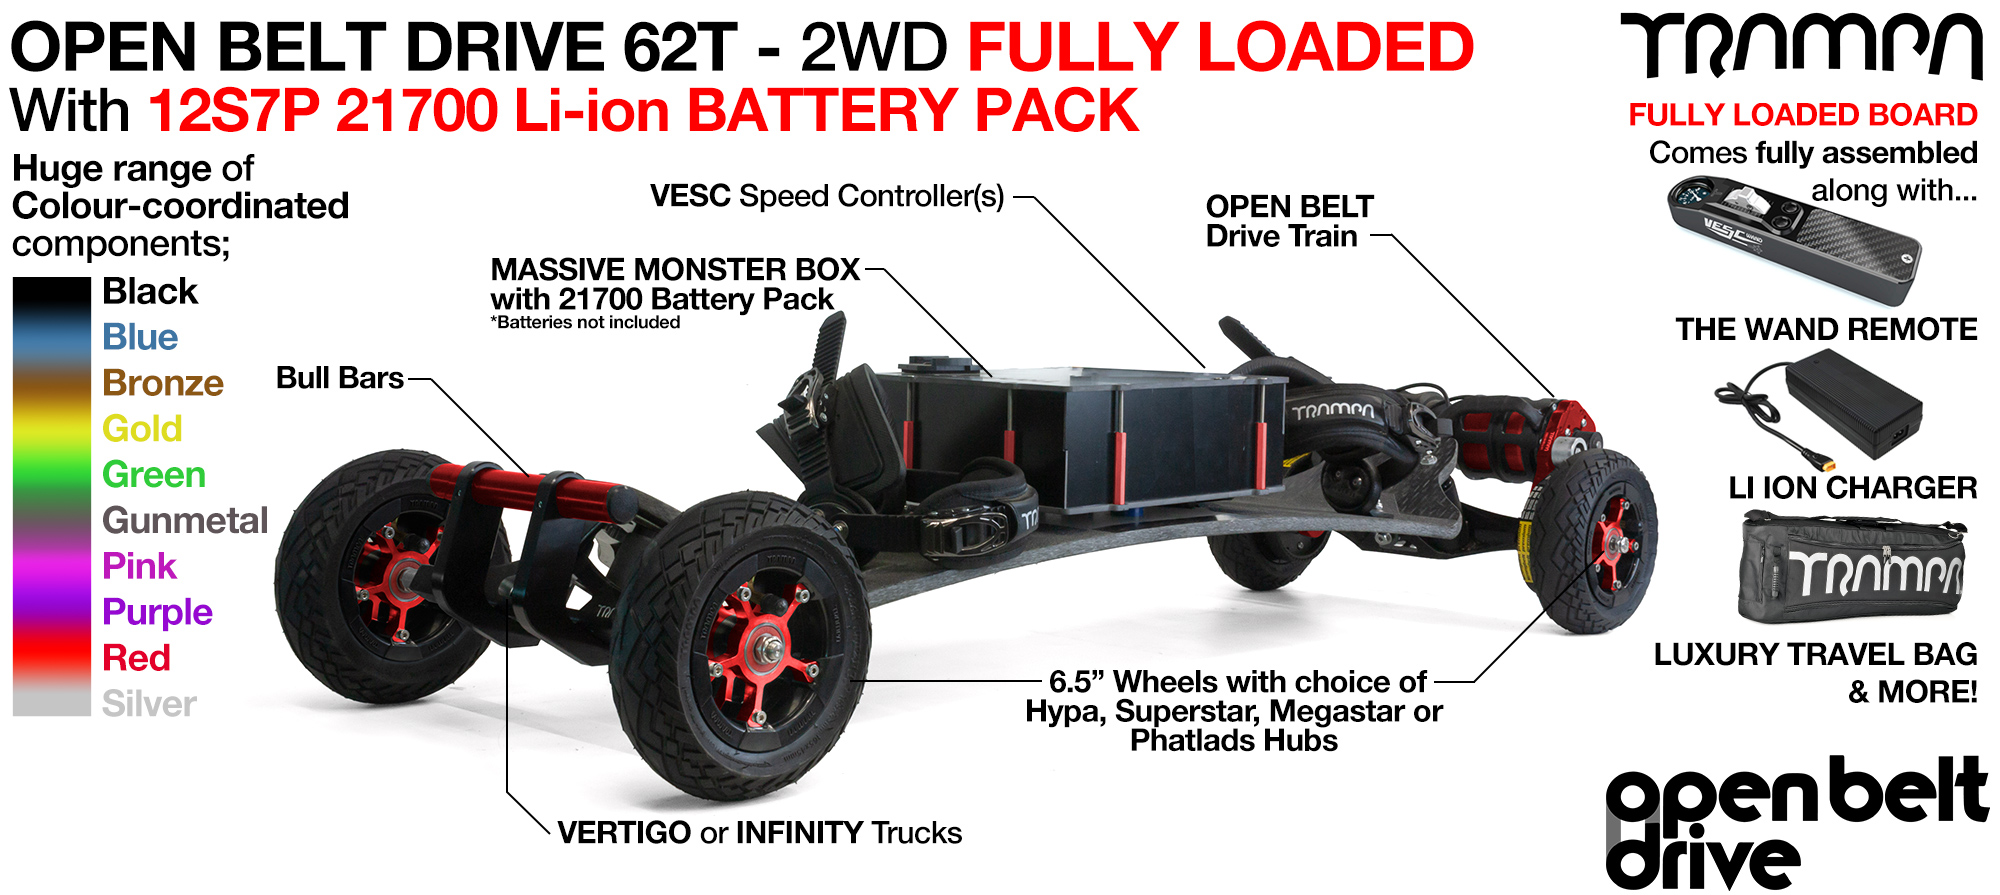 2WD 66T Open Belt Drive TRAMPA Electric Mountainboard with 6 Inch URBAN TREADs Wheels & 62 Tooth Pulleys - LOADED 21700 CELL Pack